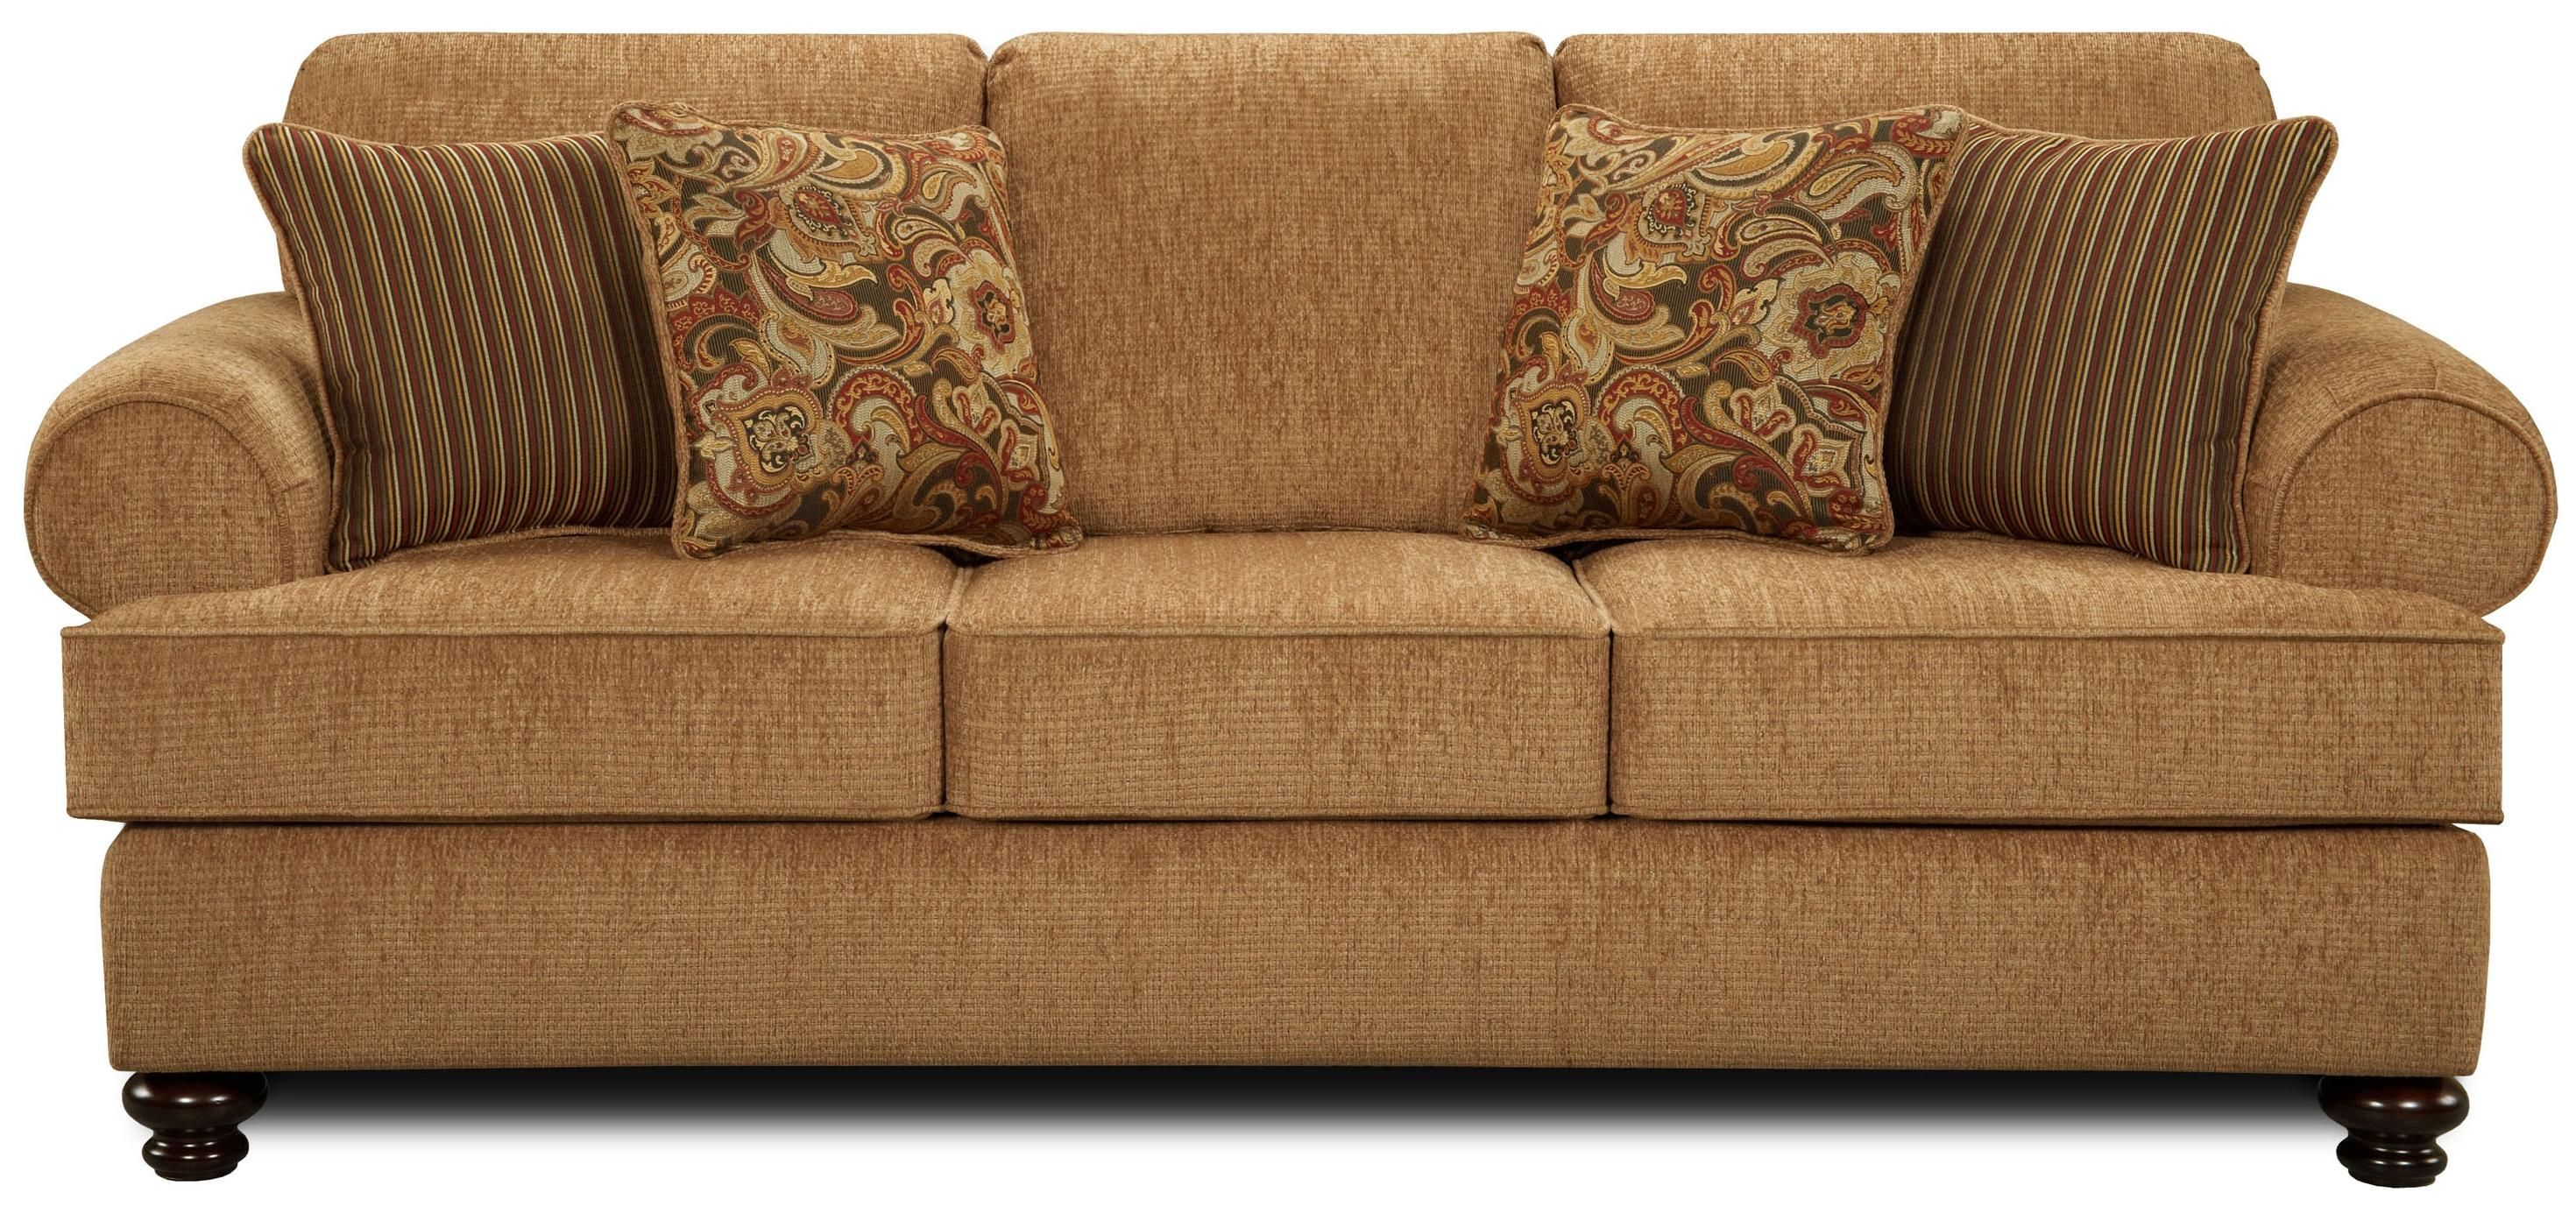 Sofas For 5000 Target Lexington Sleeper Sofa Queen By Fusion Furniture Home Sweet